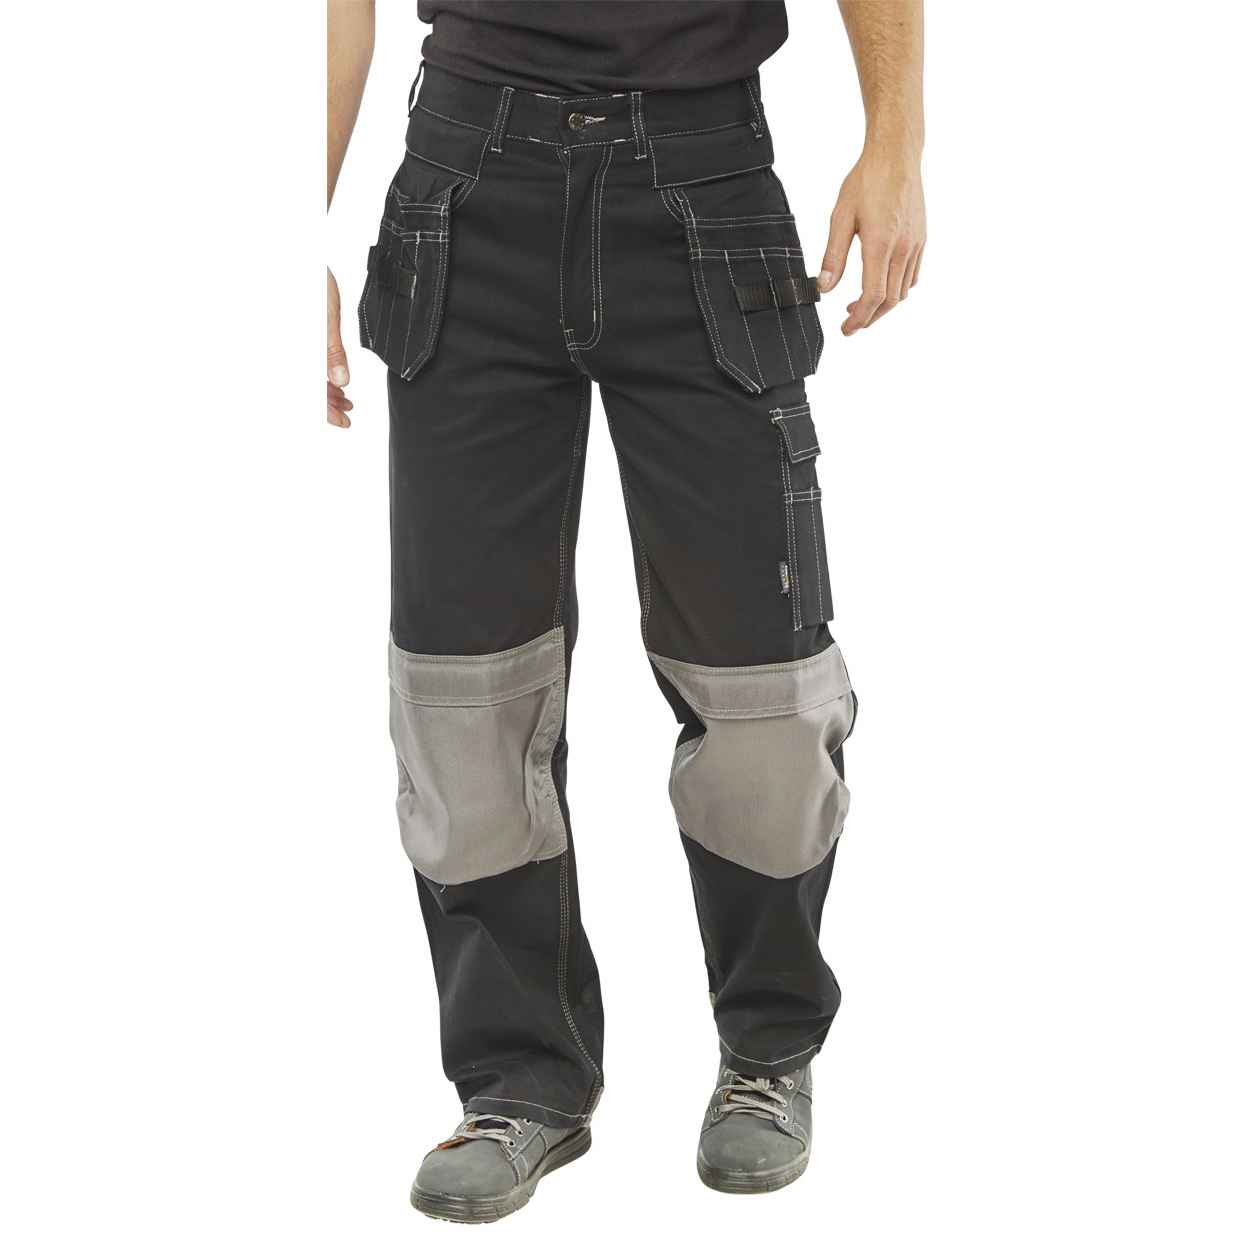 Click Workwear Kington Trousers Multipurpose Pockets Black 32 Ref KMPTBL32 Up to 3 Day Leadtime